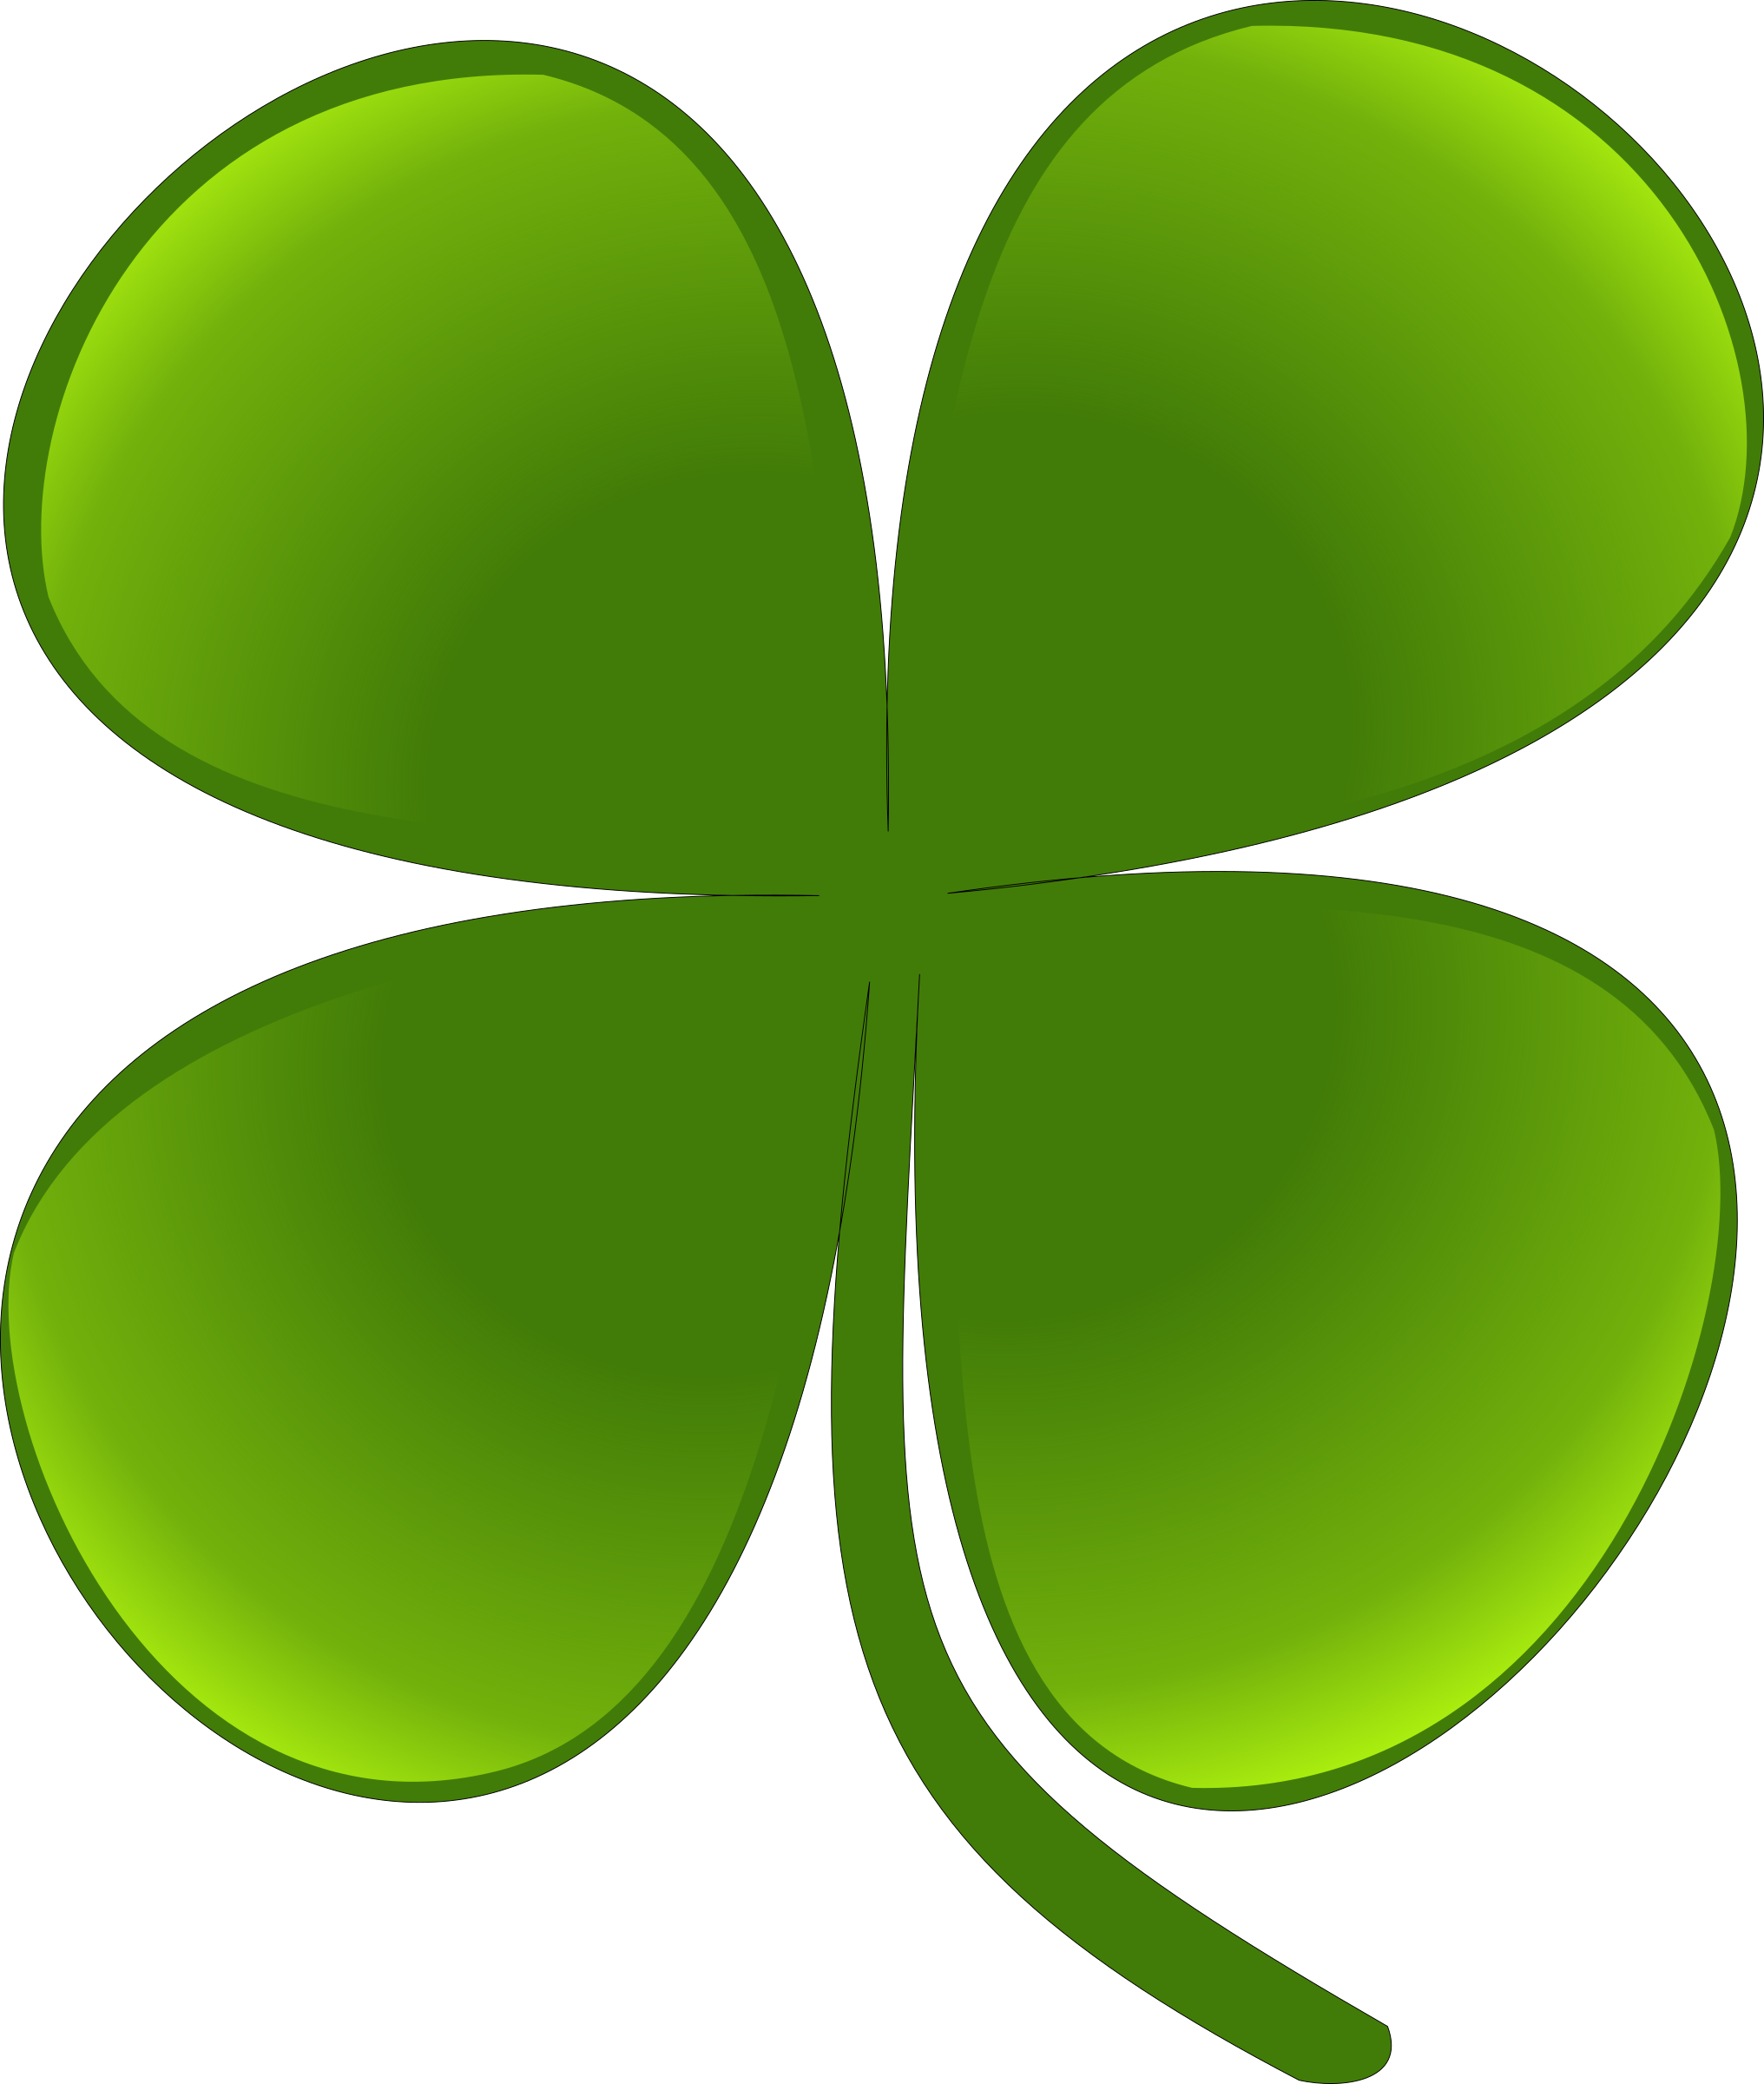 March Shamrock Free Clipart.